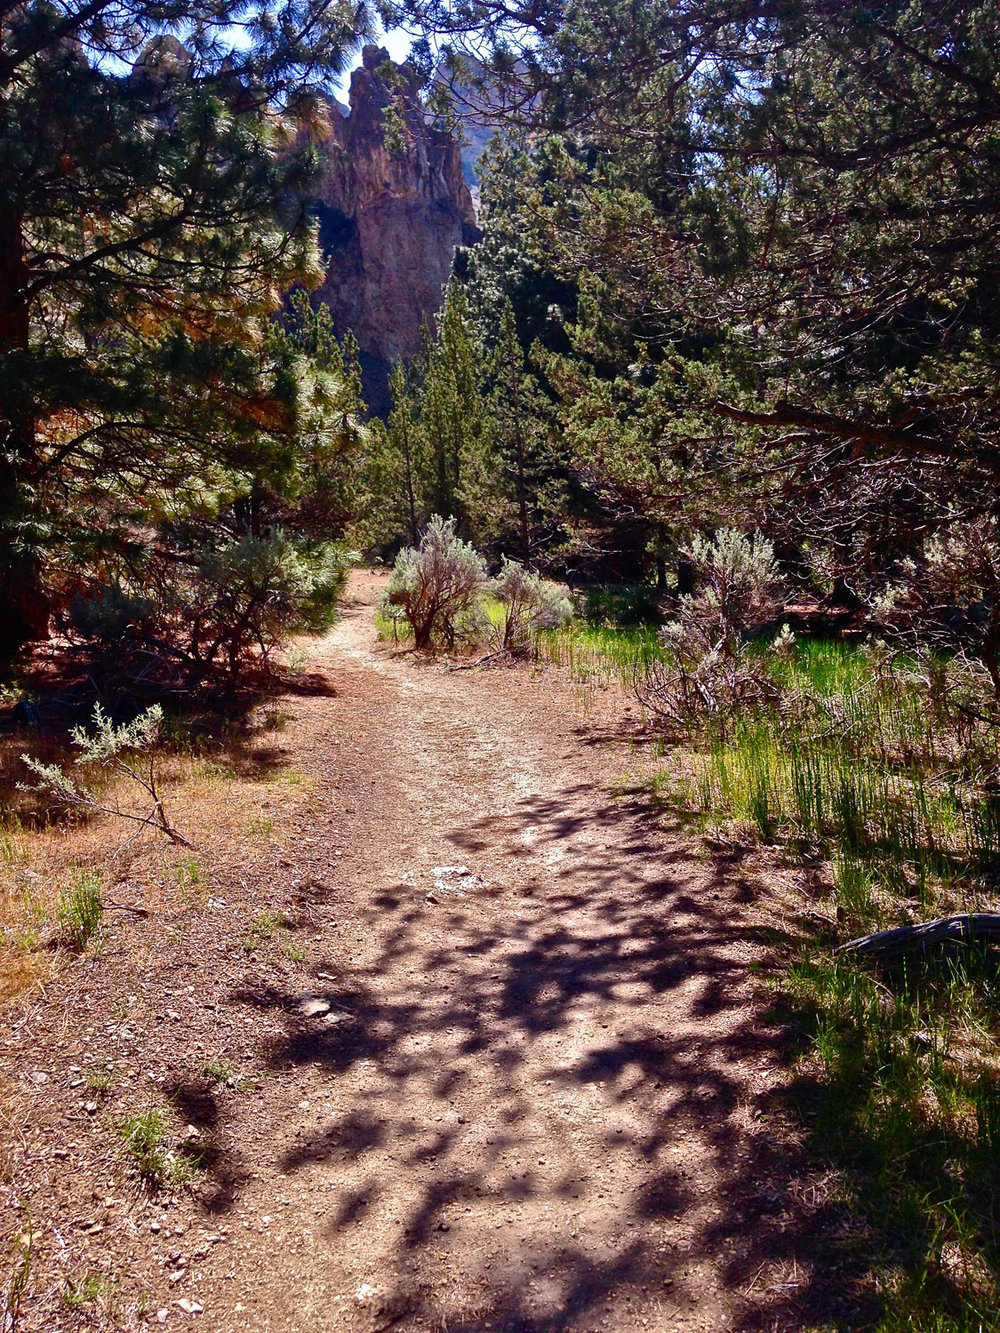 The Wolf Tree Trail goes past giant rock pinnacles on your left where golden eagles nest at Smith Rock State Park.